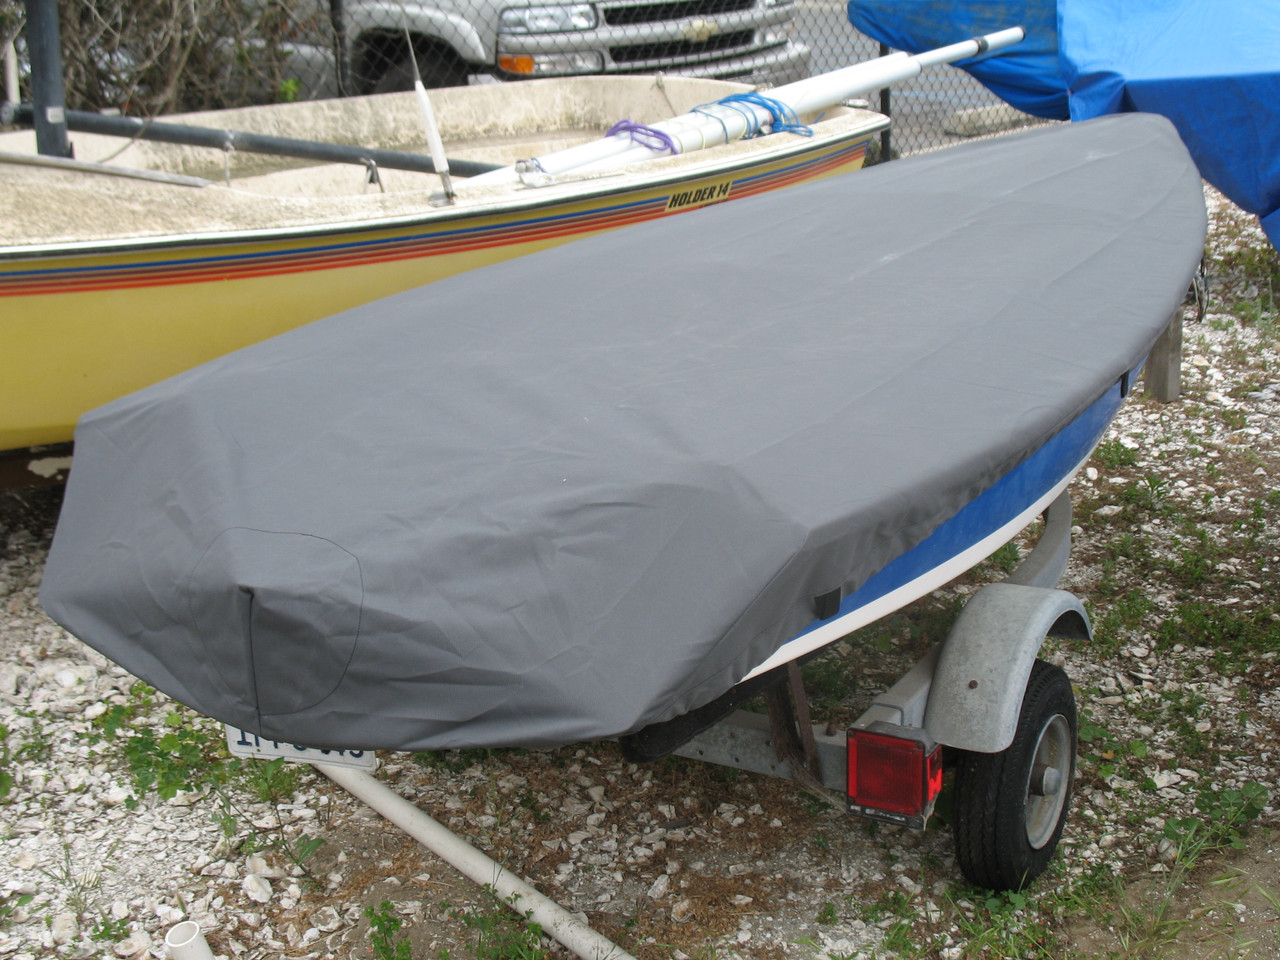 Expedition 12.5 sailboat Top Cover by SLO Sail and Canvas